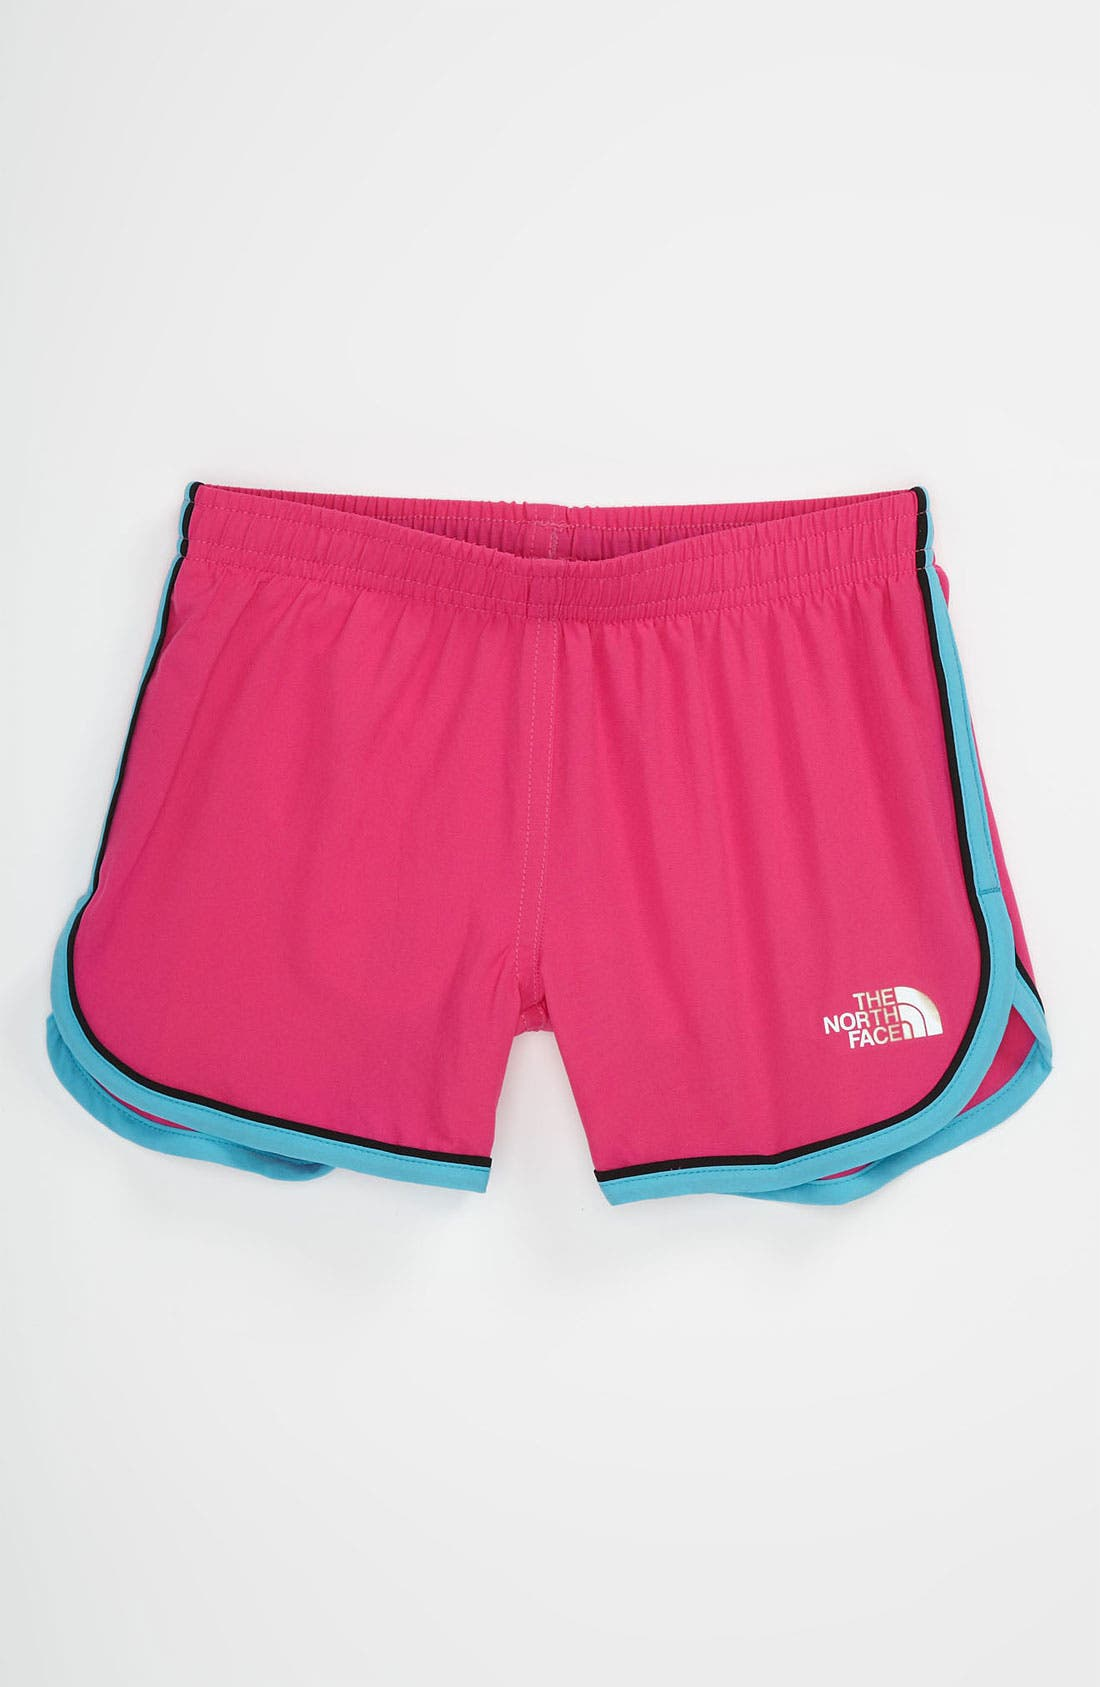 Alternate Image 1 Selected - The North Face 'Velocitee' Shorts (Big Girls)